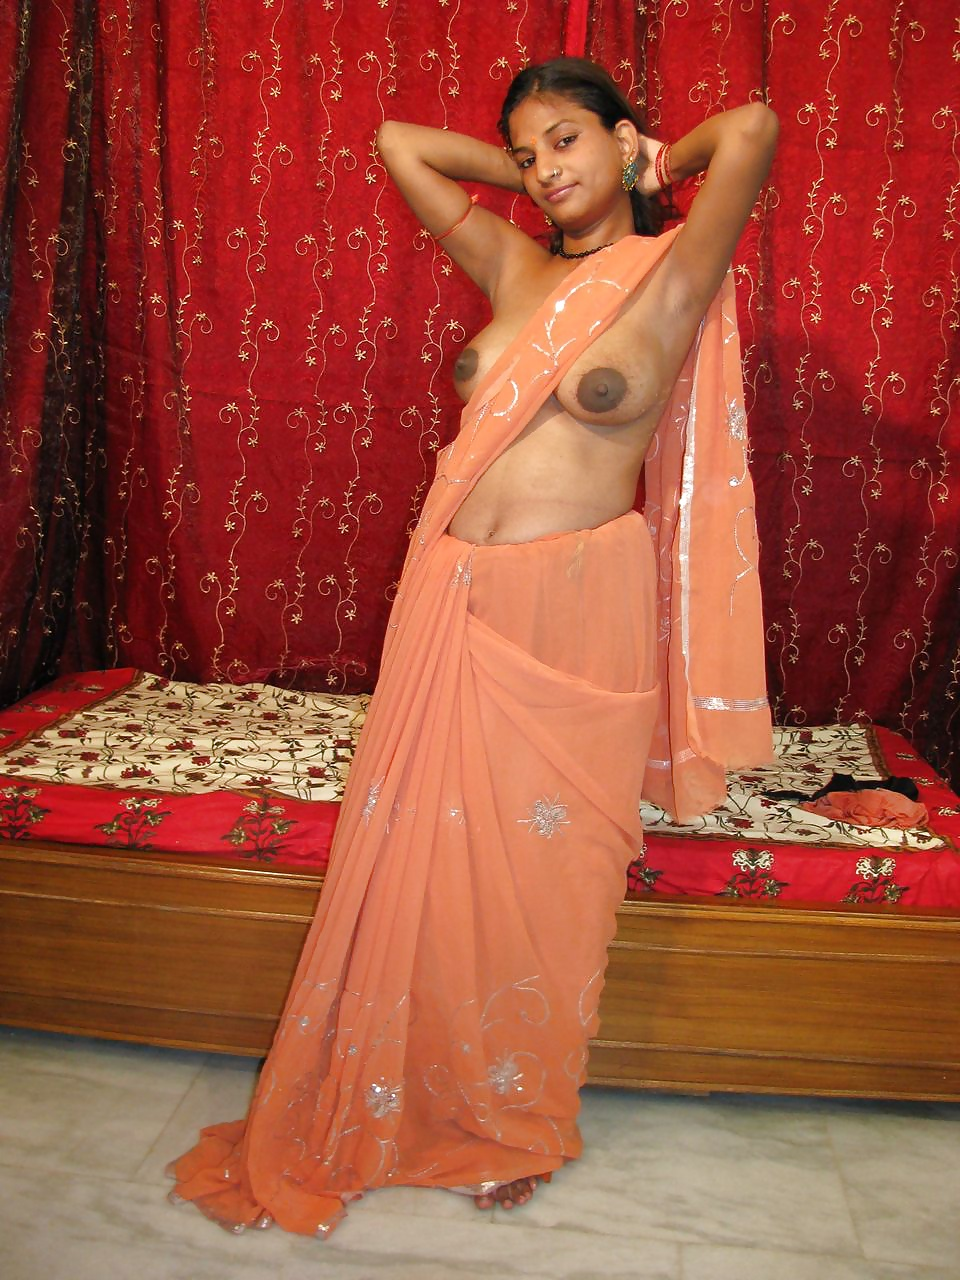 saree-lady-nude-free-japanese-sex-slaves-porn